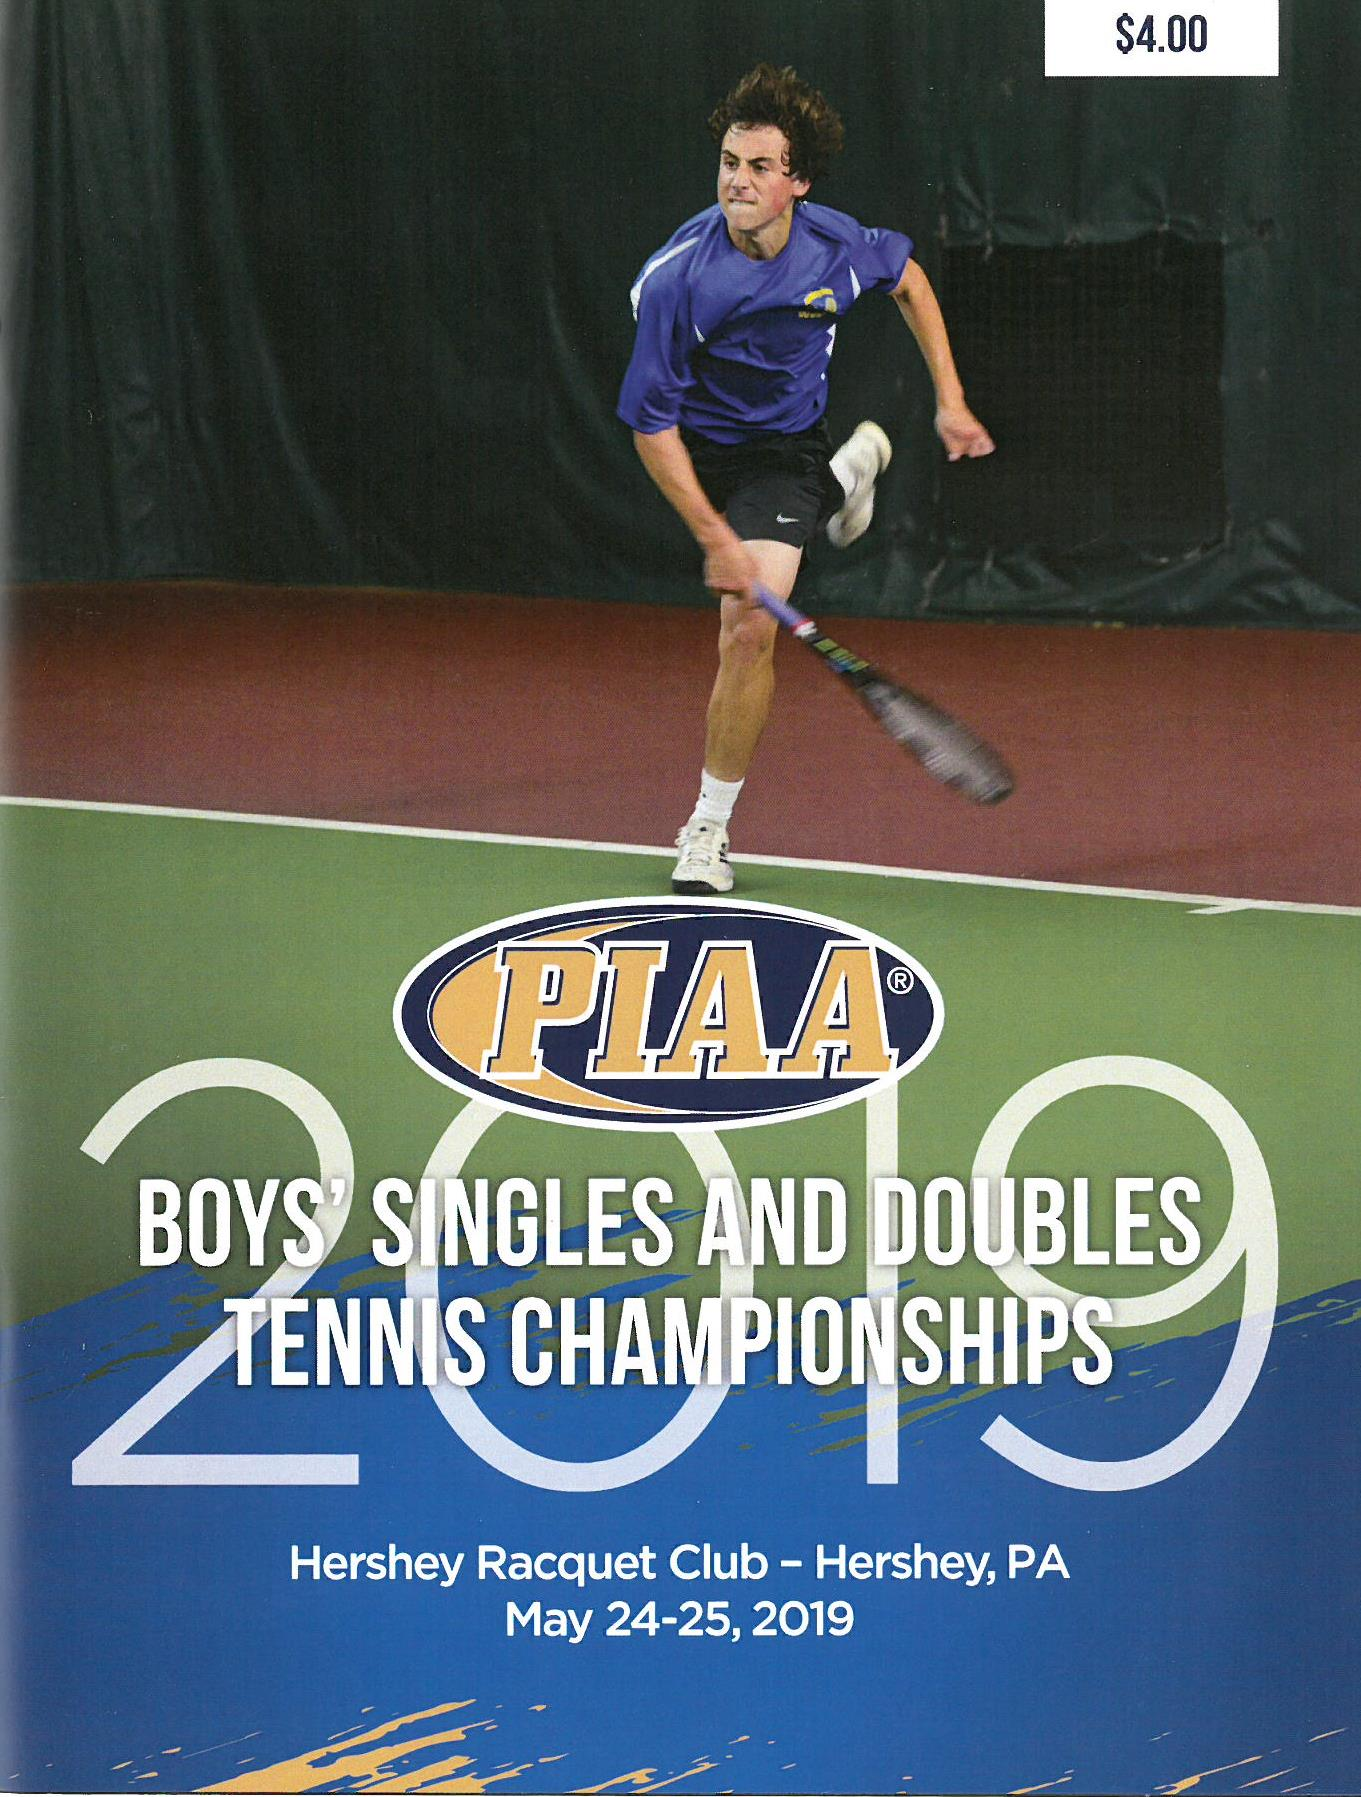 2018 Boys' Singles and Doubles Tennis Championship Program